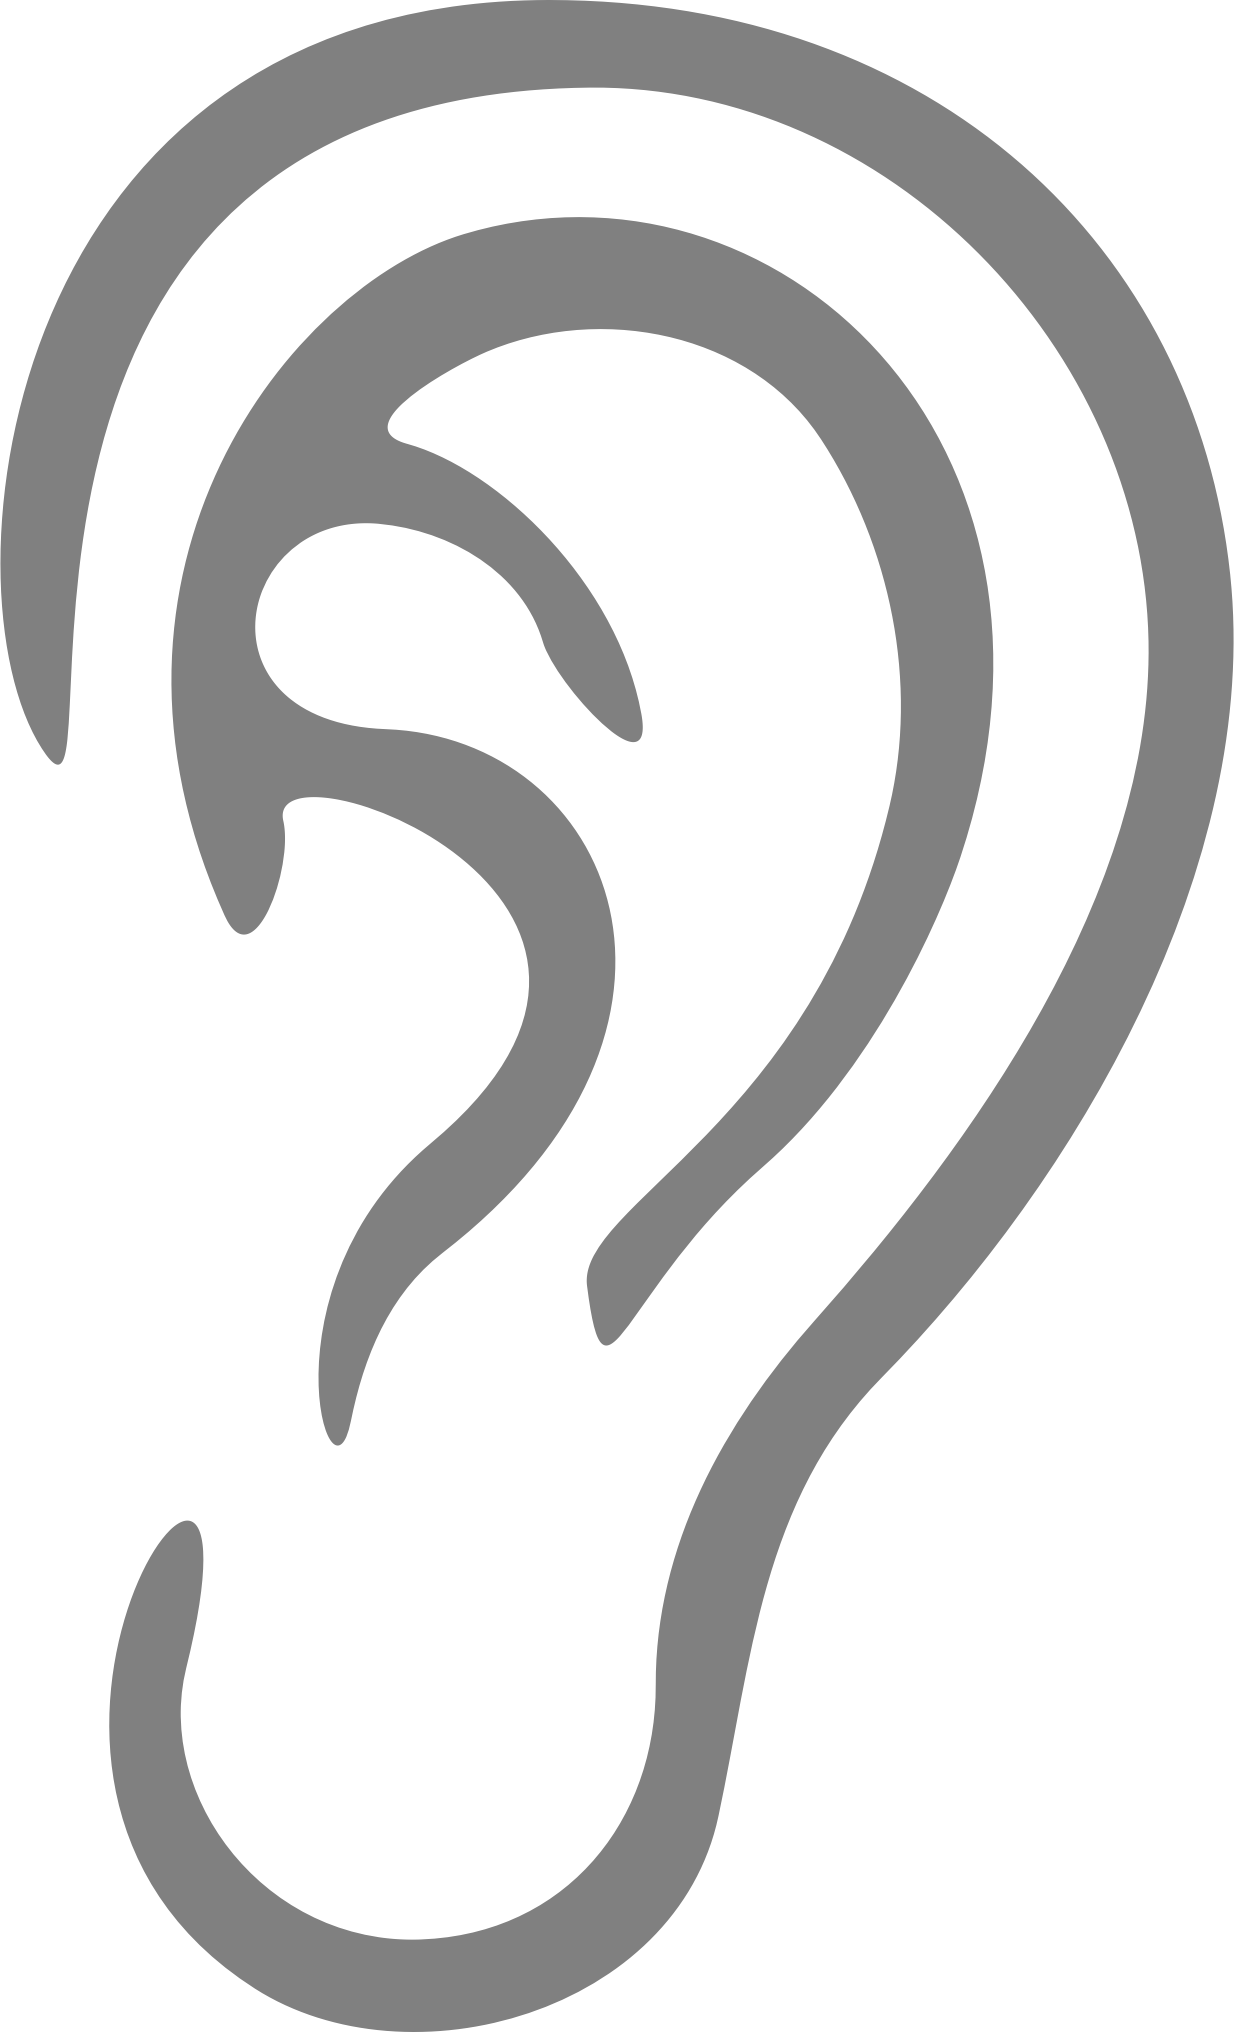 Ear png. Image with transparent background